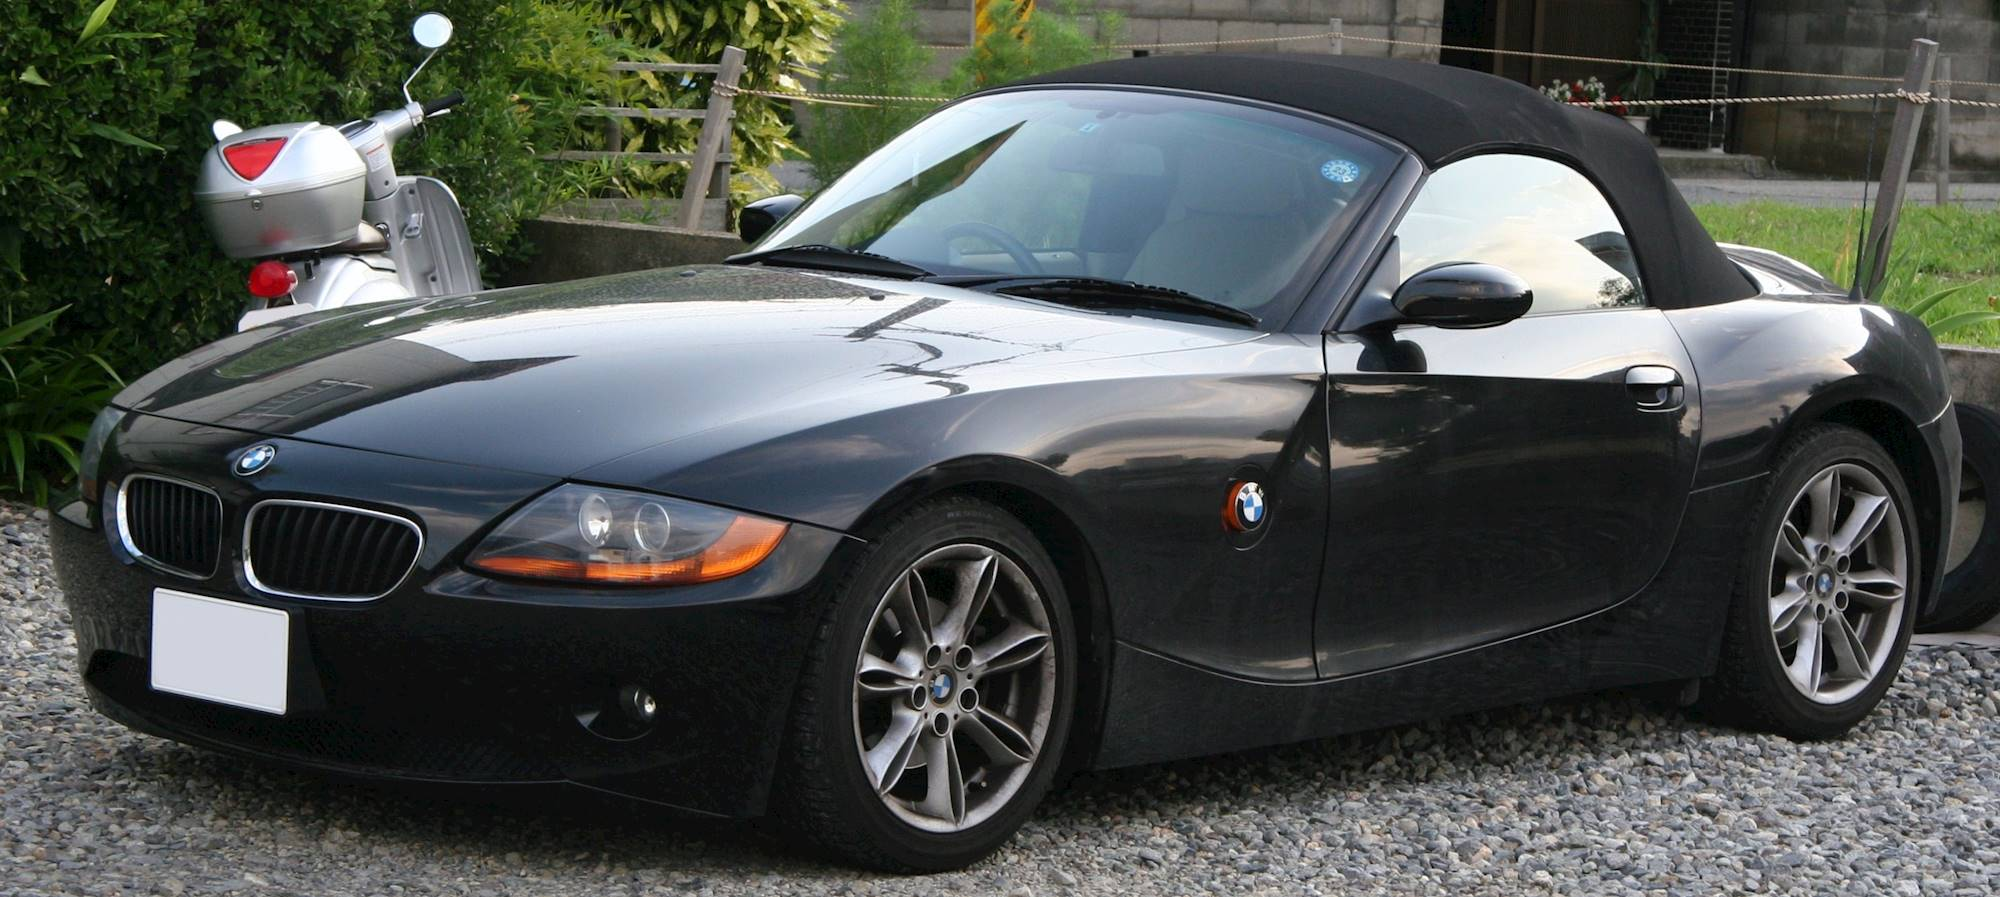 2003 Bmw Z4 2 5i Convertible 2 5l Manual